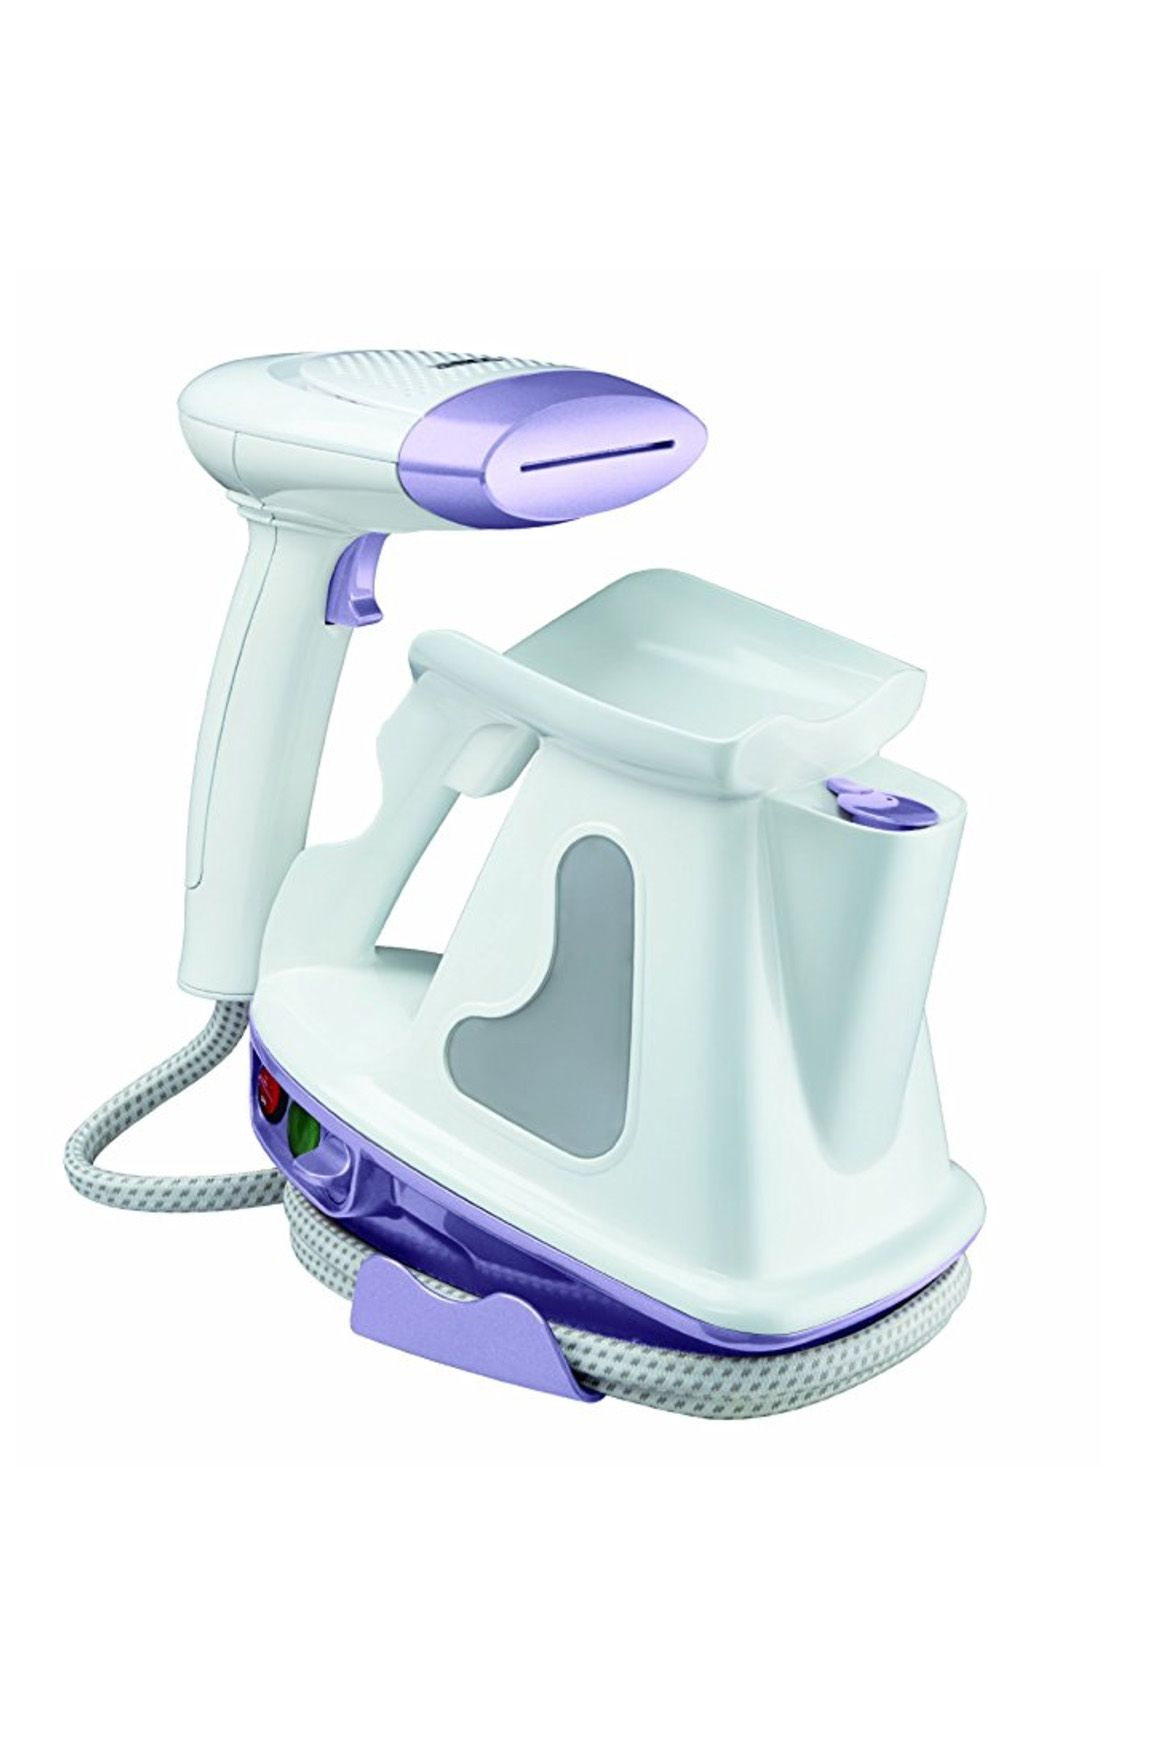 Heated Chair Pad >> 9 Best Handheld Clothes Steamers - Top Garment Steamer Reviews 2018